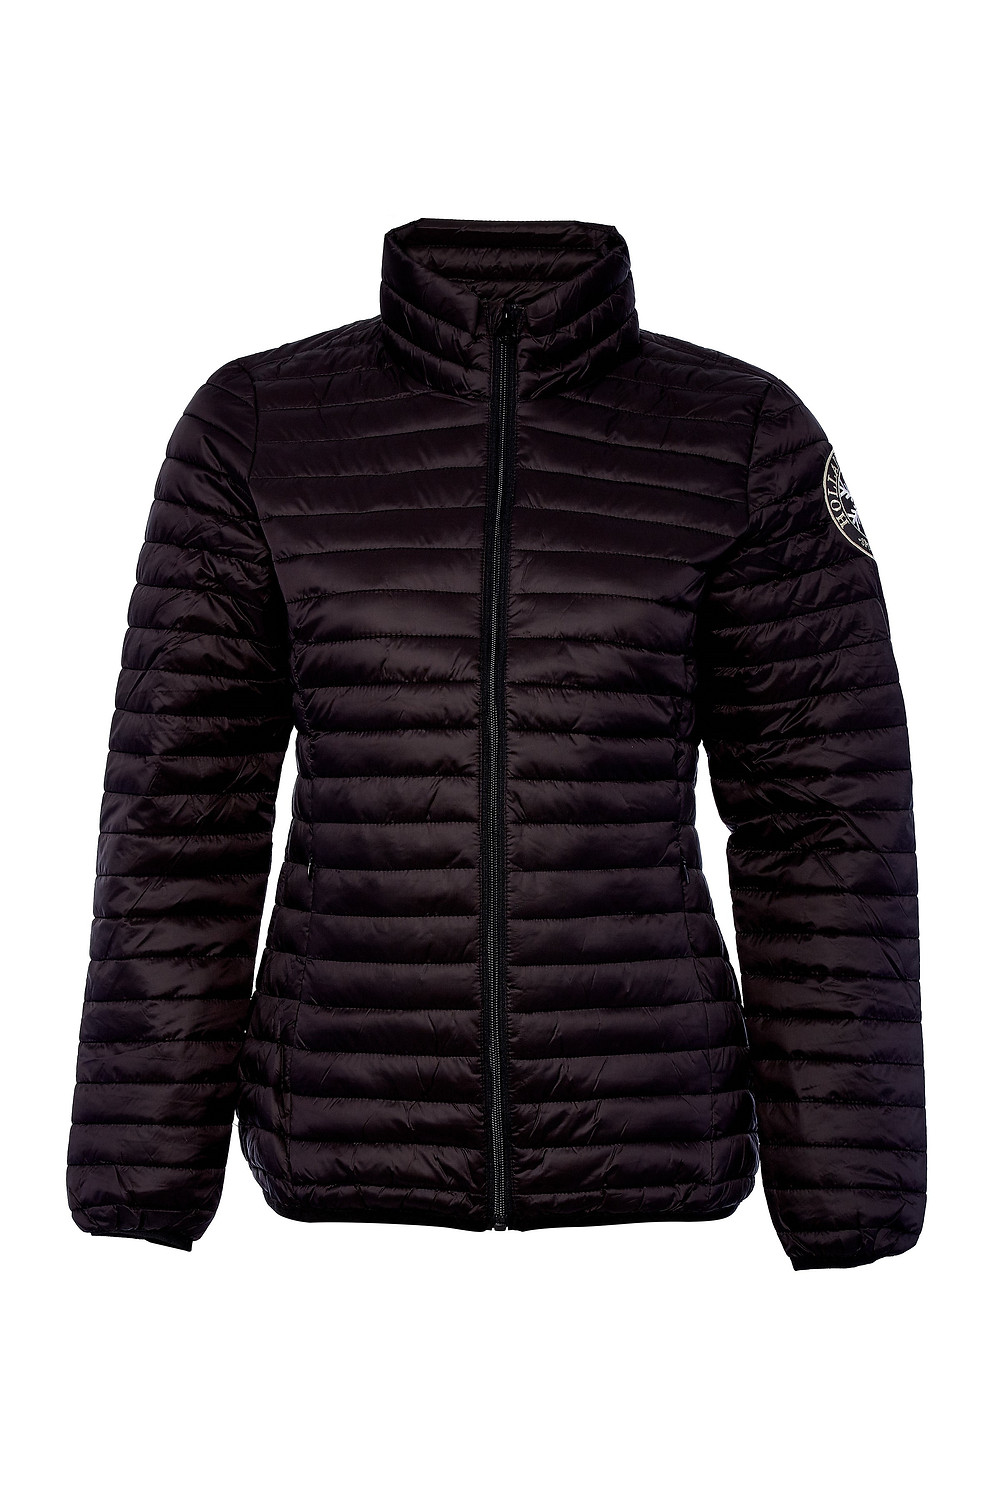 Holland Cooper Les Arcs padded jacket